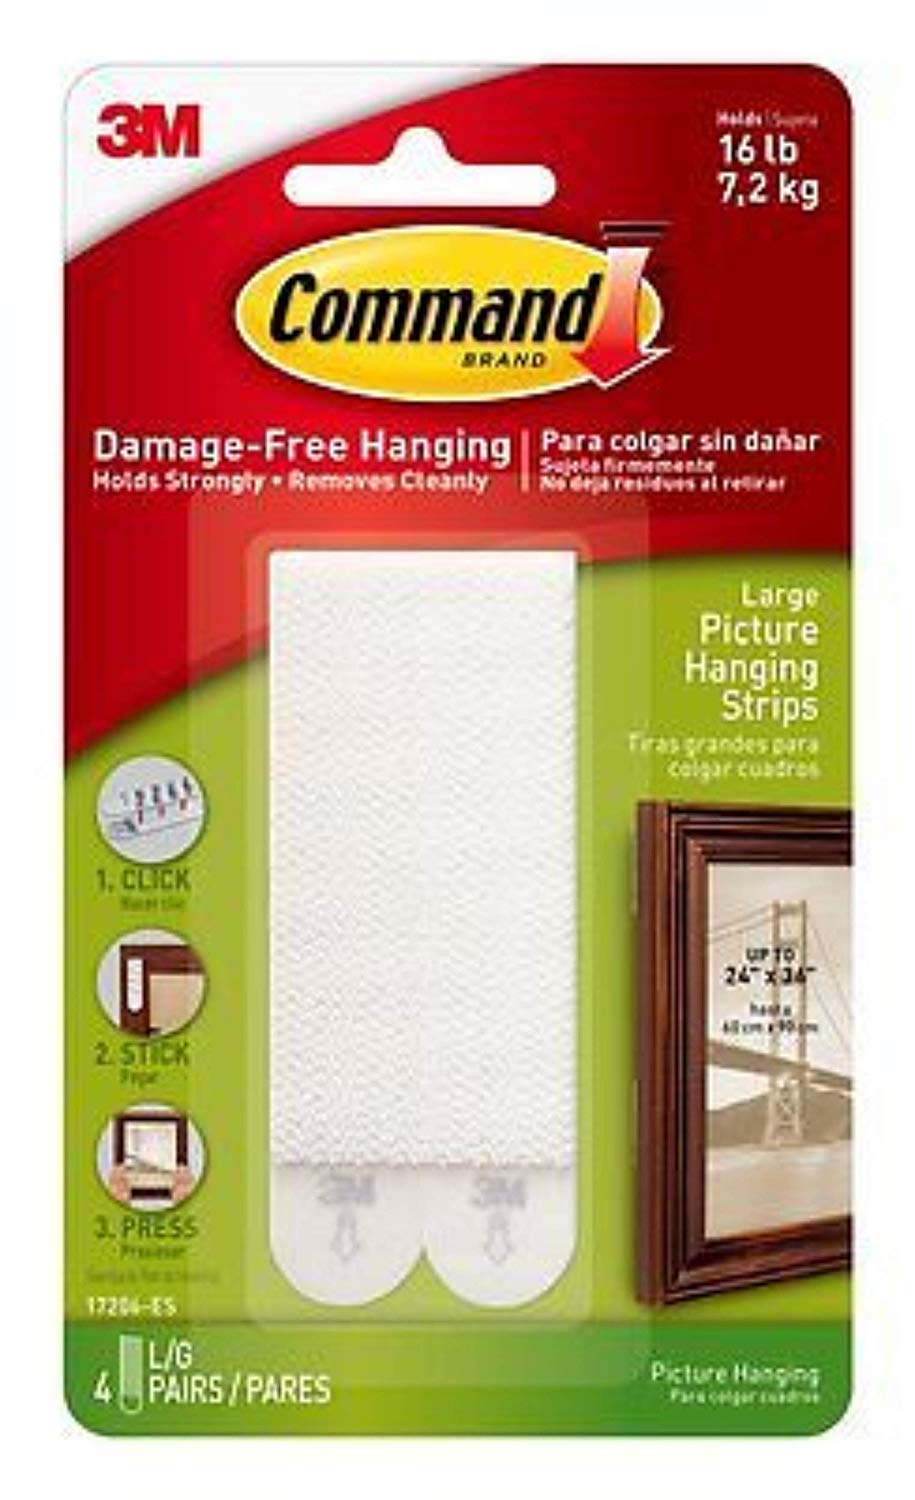 2XSmall and Medium Picture Hanging Strips Value Pack, 4 Pairs Small, 8 Pairs Medium-White Command